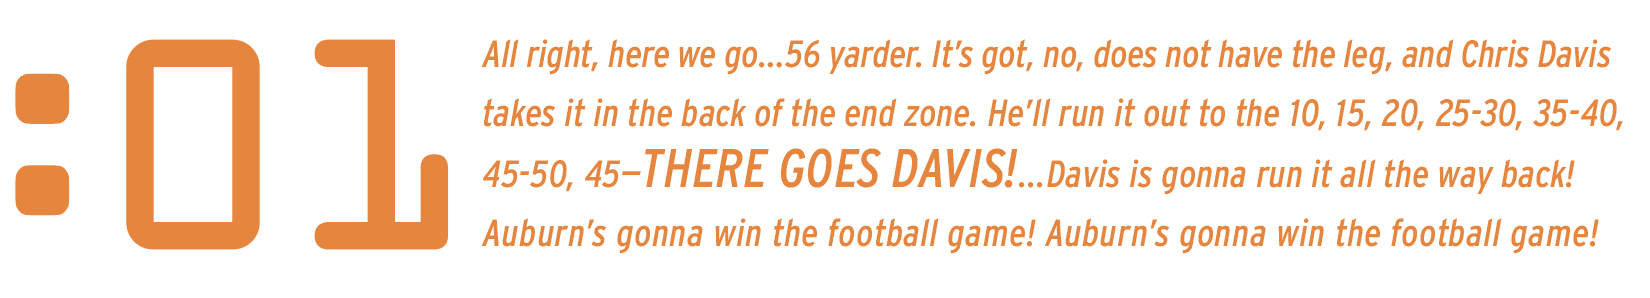 :01 All right, here we go…56 yarder. It's got, no, does not have the leg, and Chris Davis takes it in the back of the end zone. He'll run it out to the 10, 15, 20, 25-30, 35-40, 45-50, 45—THERE GOES DAVIS!...Davis is gonna run it all the way back! Auburn's gonna win the football game! Auburn's gonna win the football game!